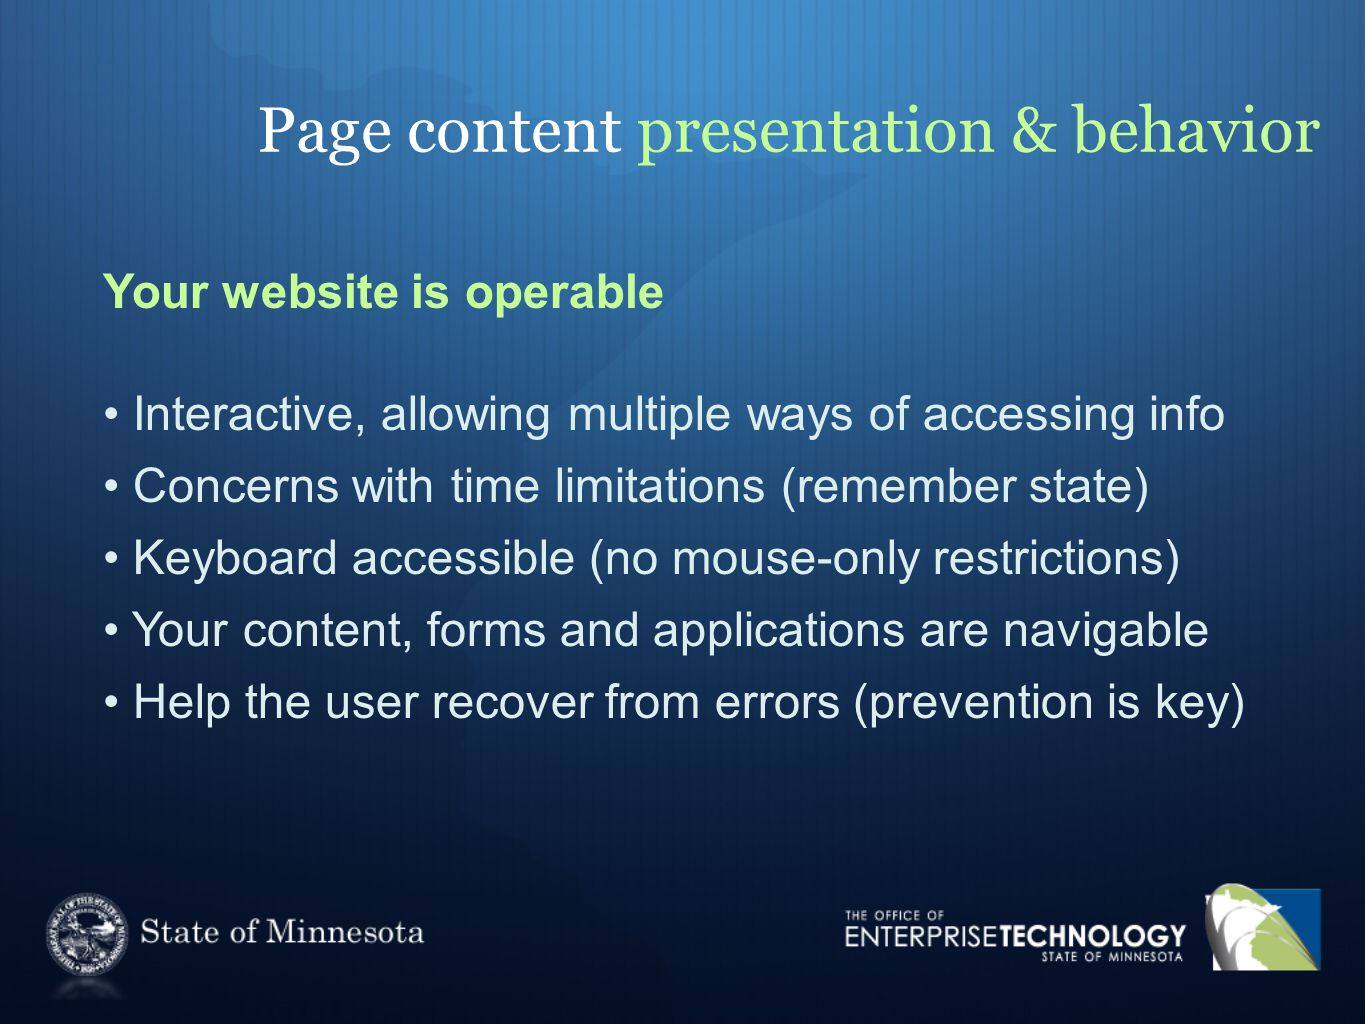 Page content presentation & behavior Your website is operable Interactive, allowing multiple ways of accessing info Concerns with time limitations (remember state) Keyboard accessible (no mouse-only restrictions) Your content, forms and applications are navigable Help the user recover from errors (prevention is key)